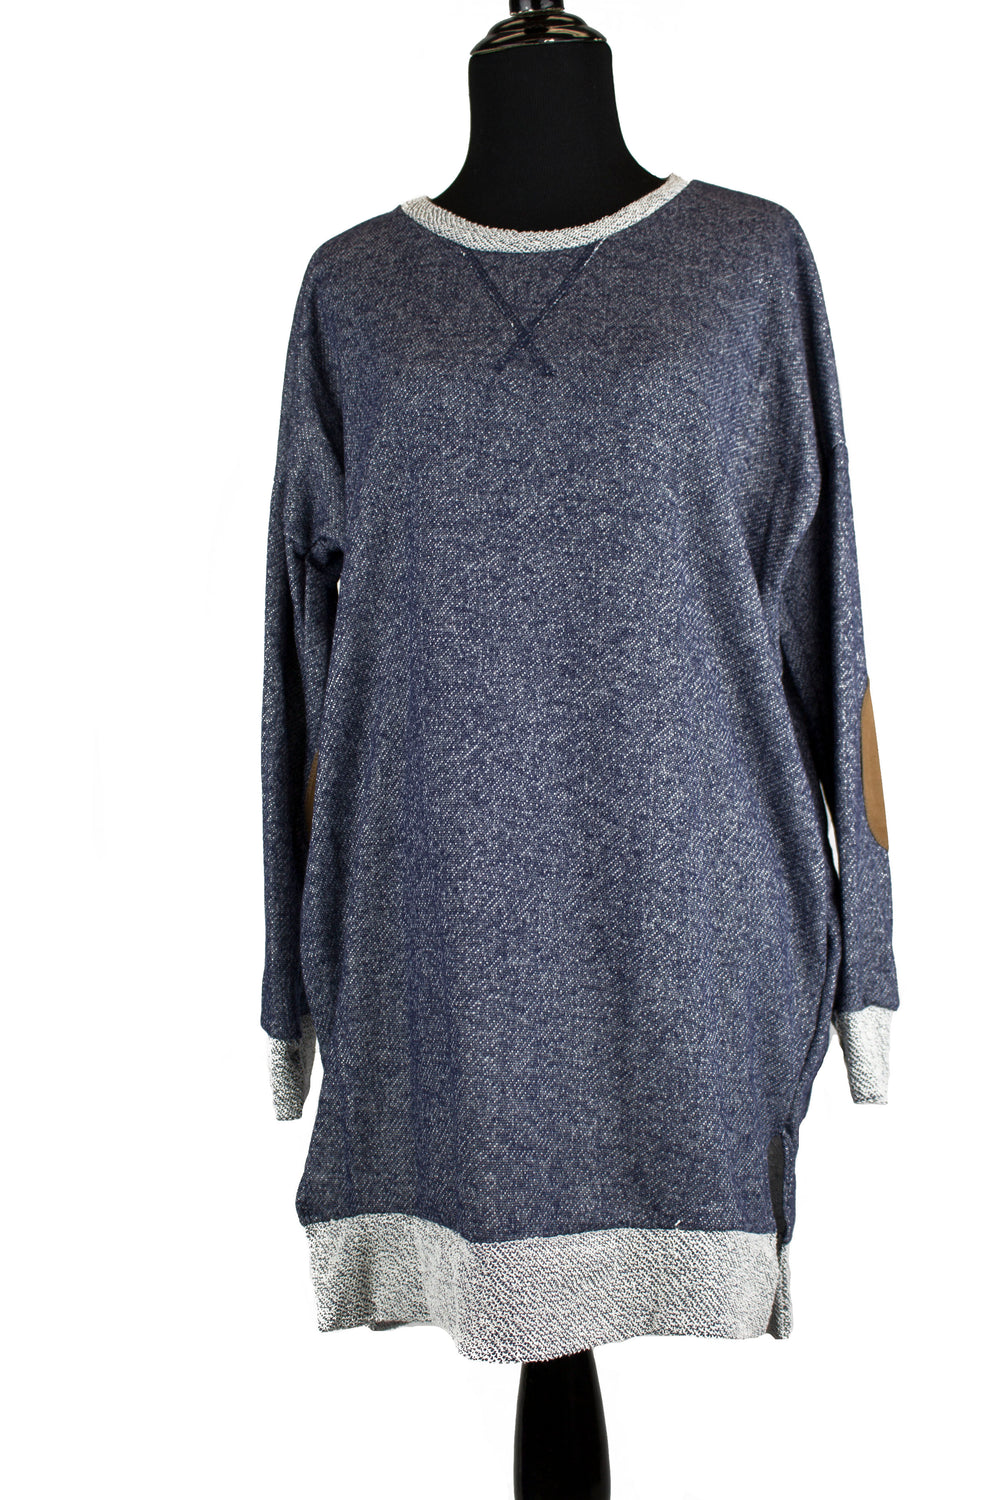 Elbow Patch Sweater - Navy